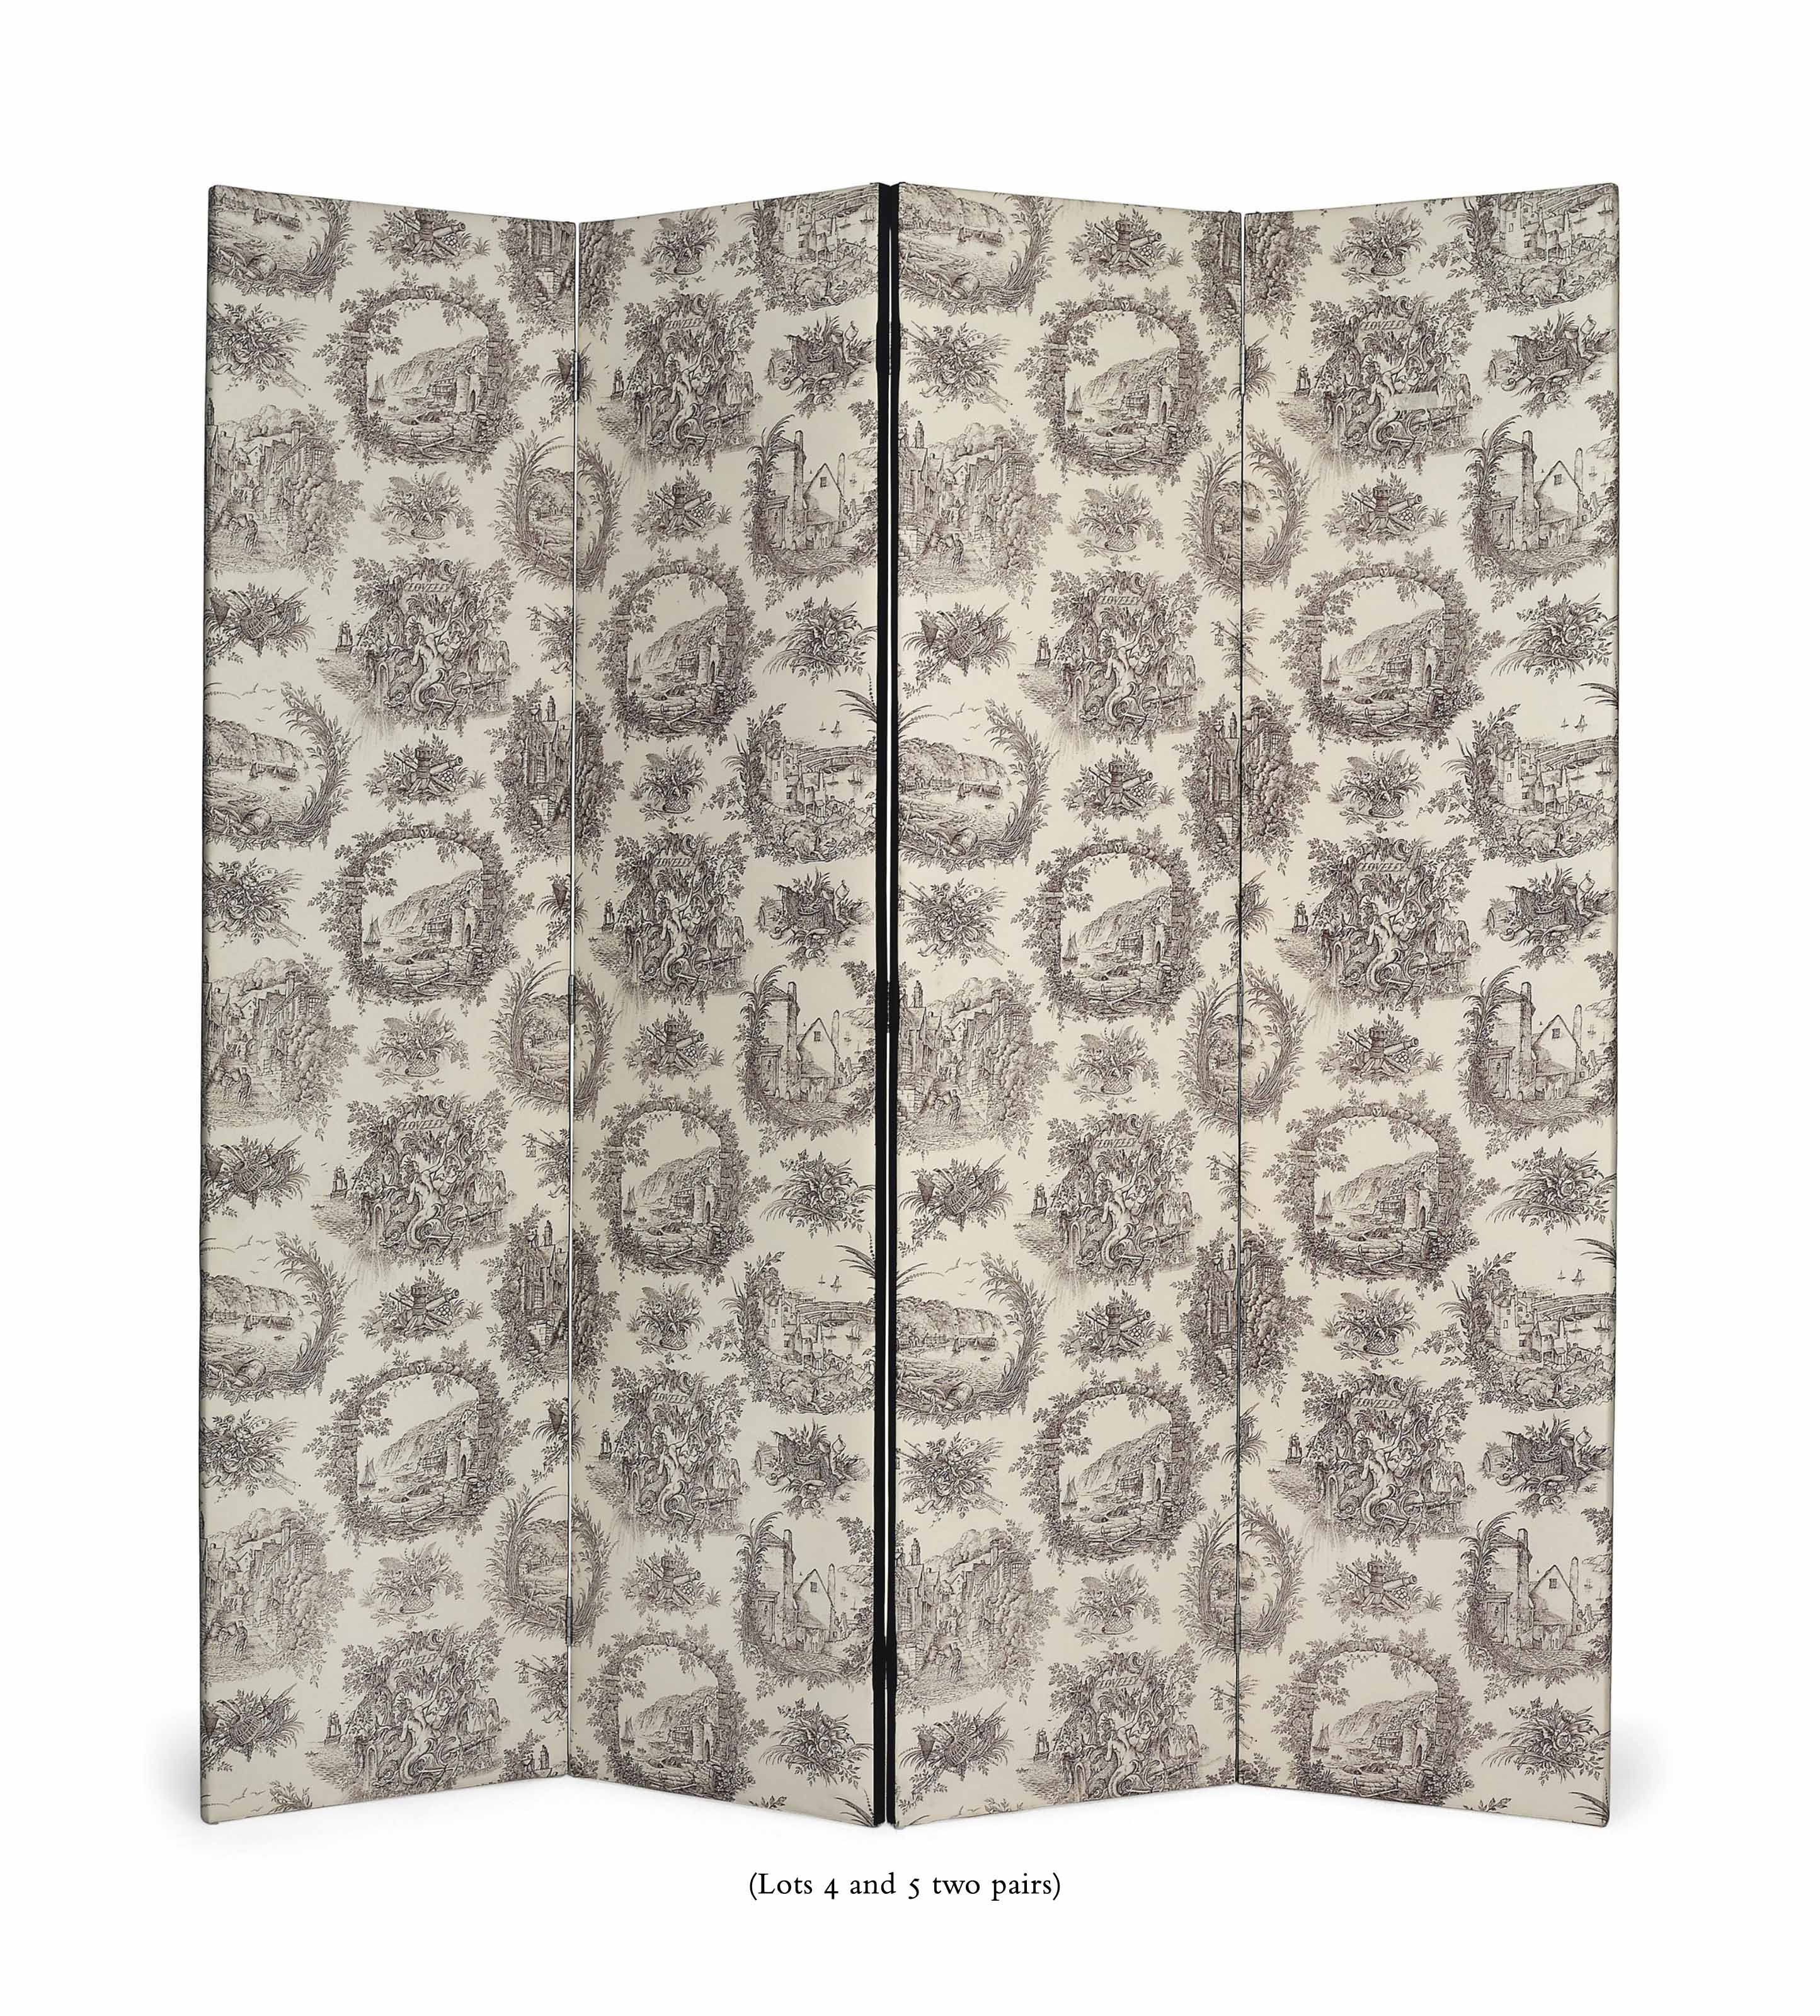 A PAIR OF FOUR-FOLD TOILE-DE-JOUY PRINTED-COTTON SCREENS OF LARGE SIZE